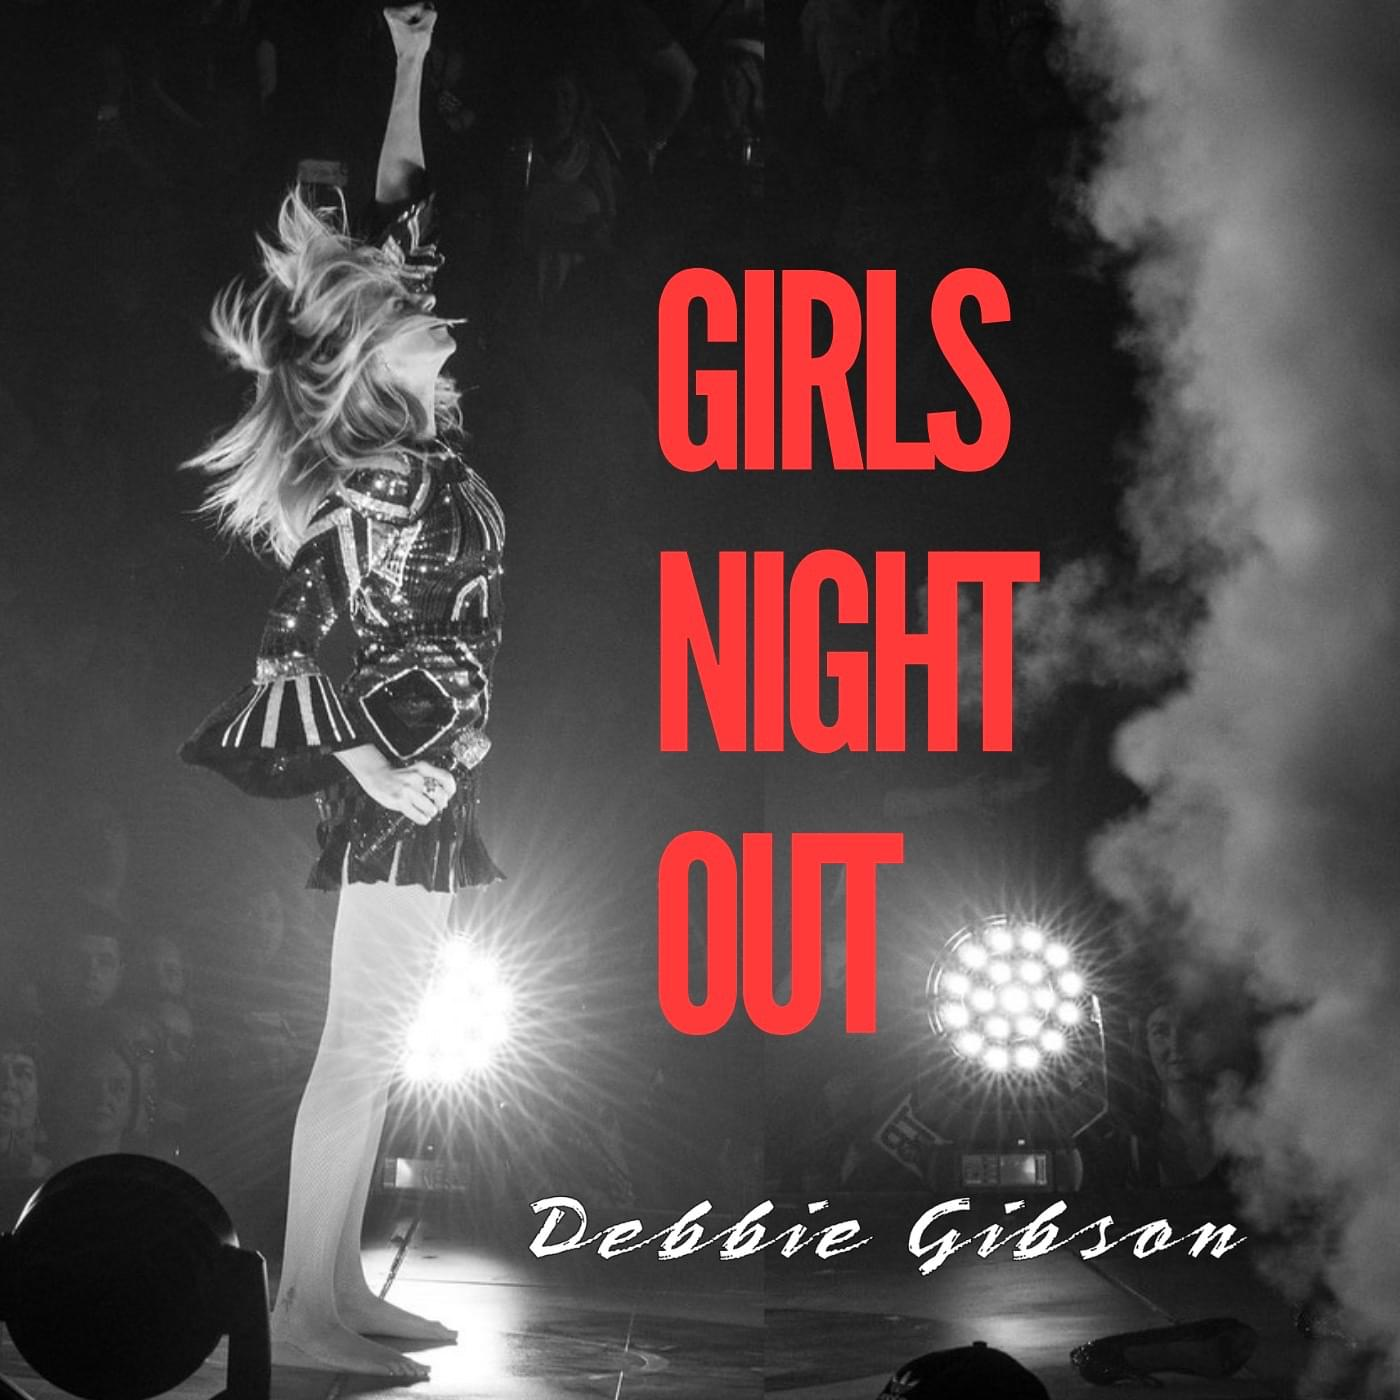 Debbie Gibson Drops New Music Prior to Des Moines Show